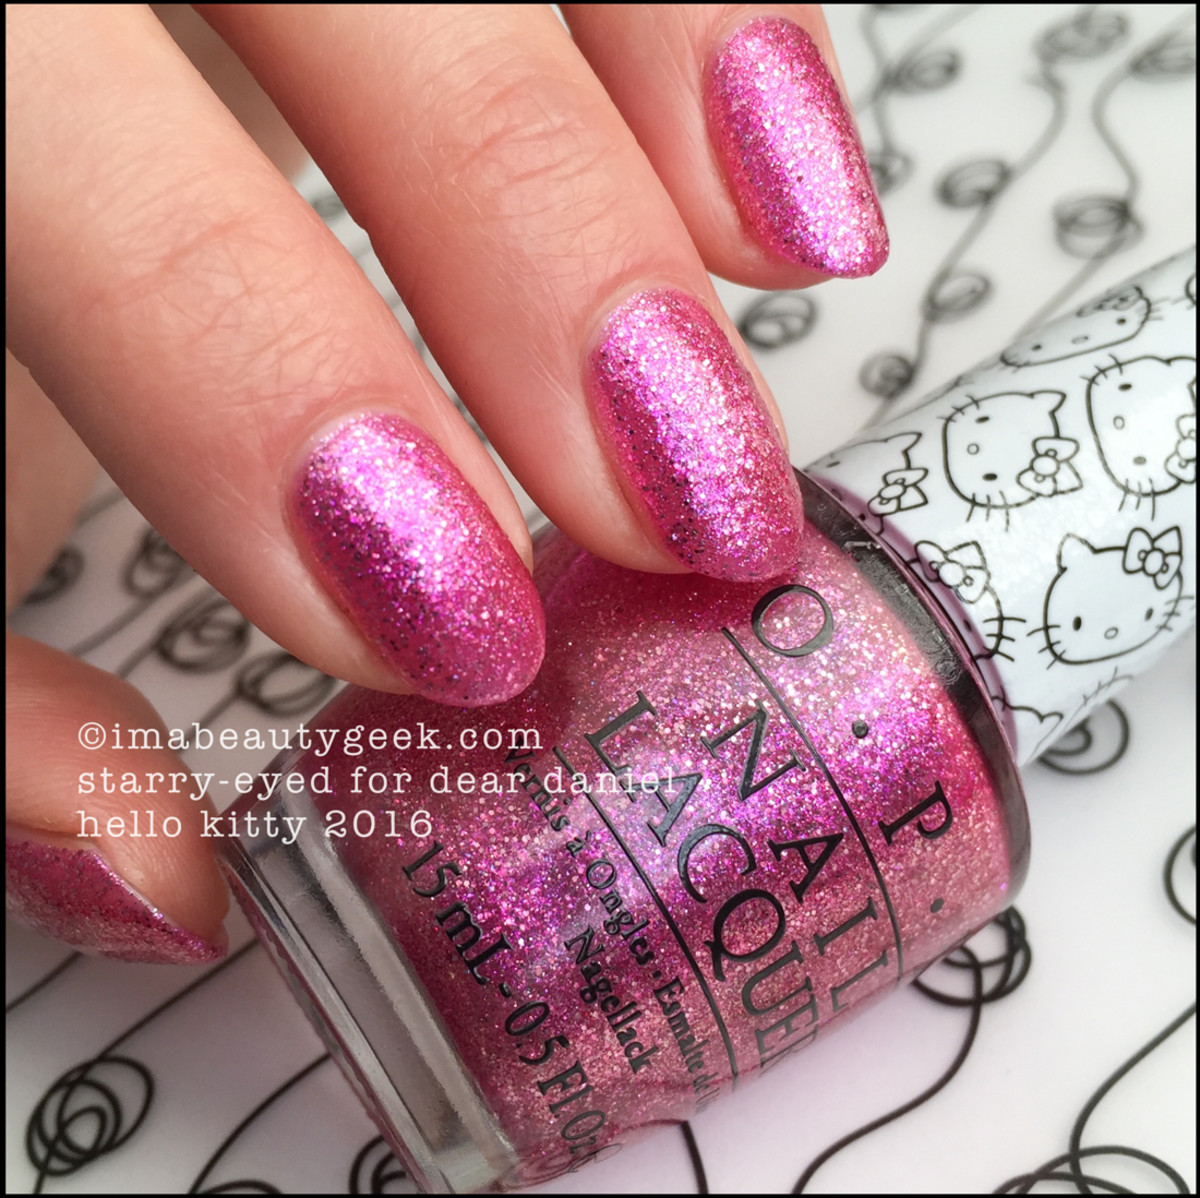 OPI Starry Eyed For Dear Daniel_OPI Hello Kitty 2016 Collection